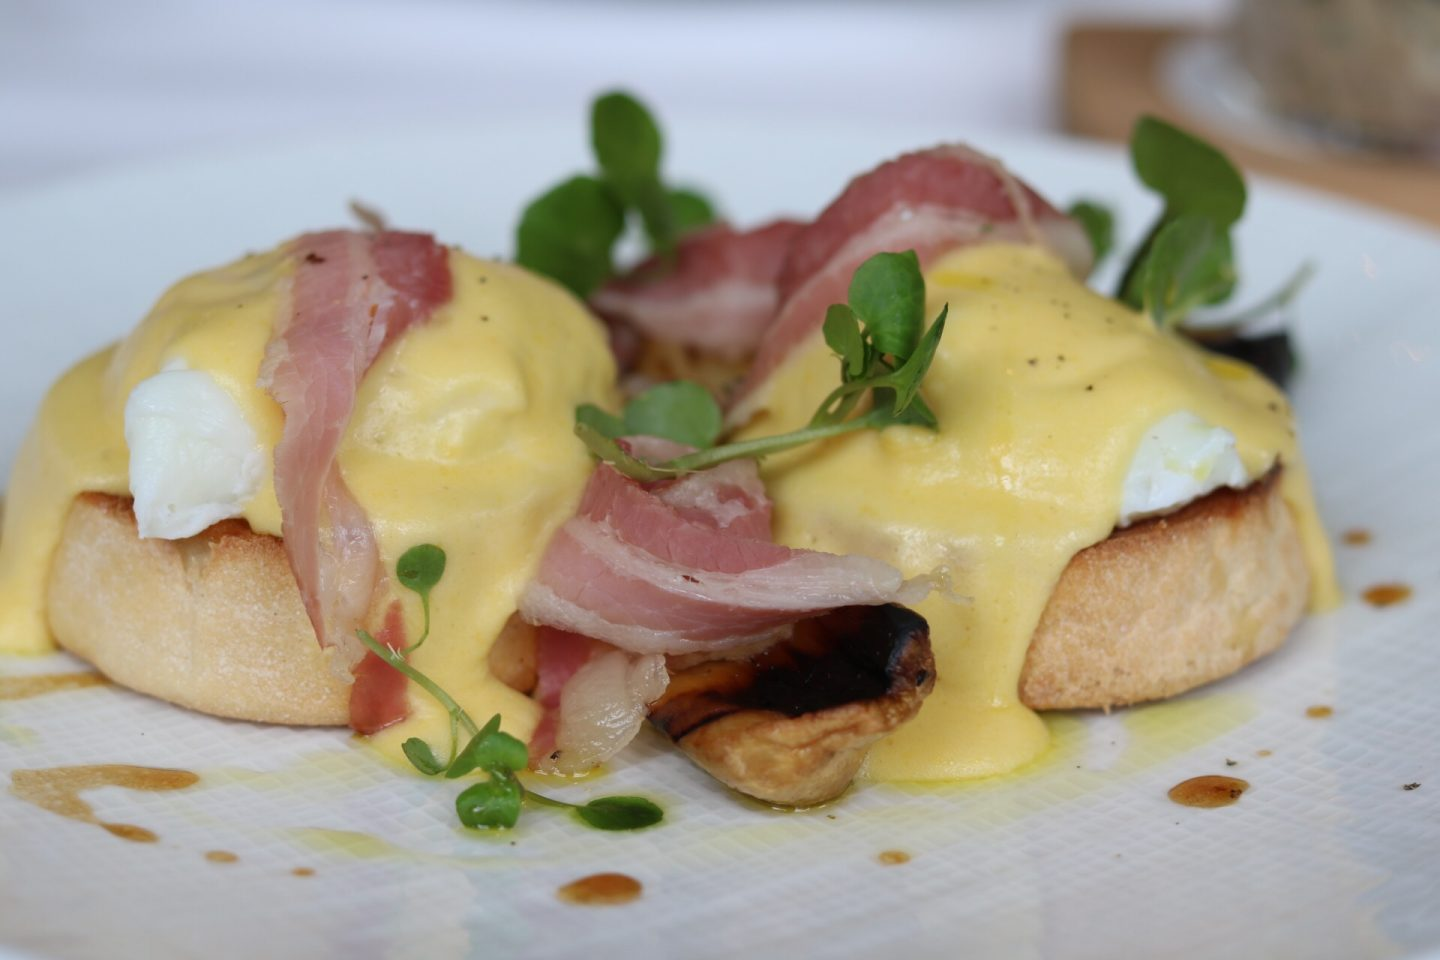 Farmhouse Brunch at Roux at the Landau